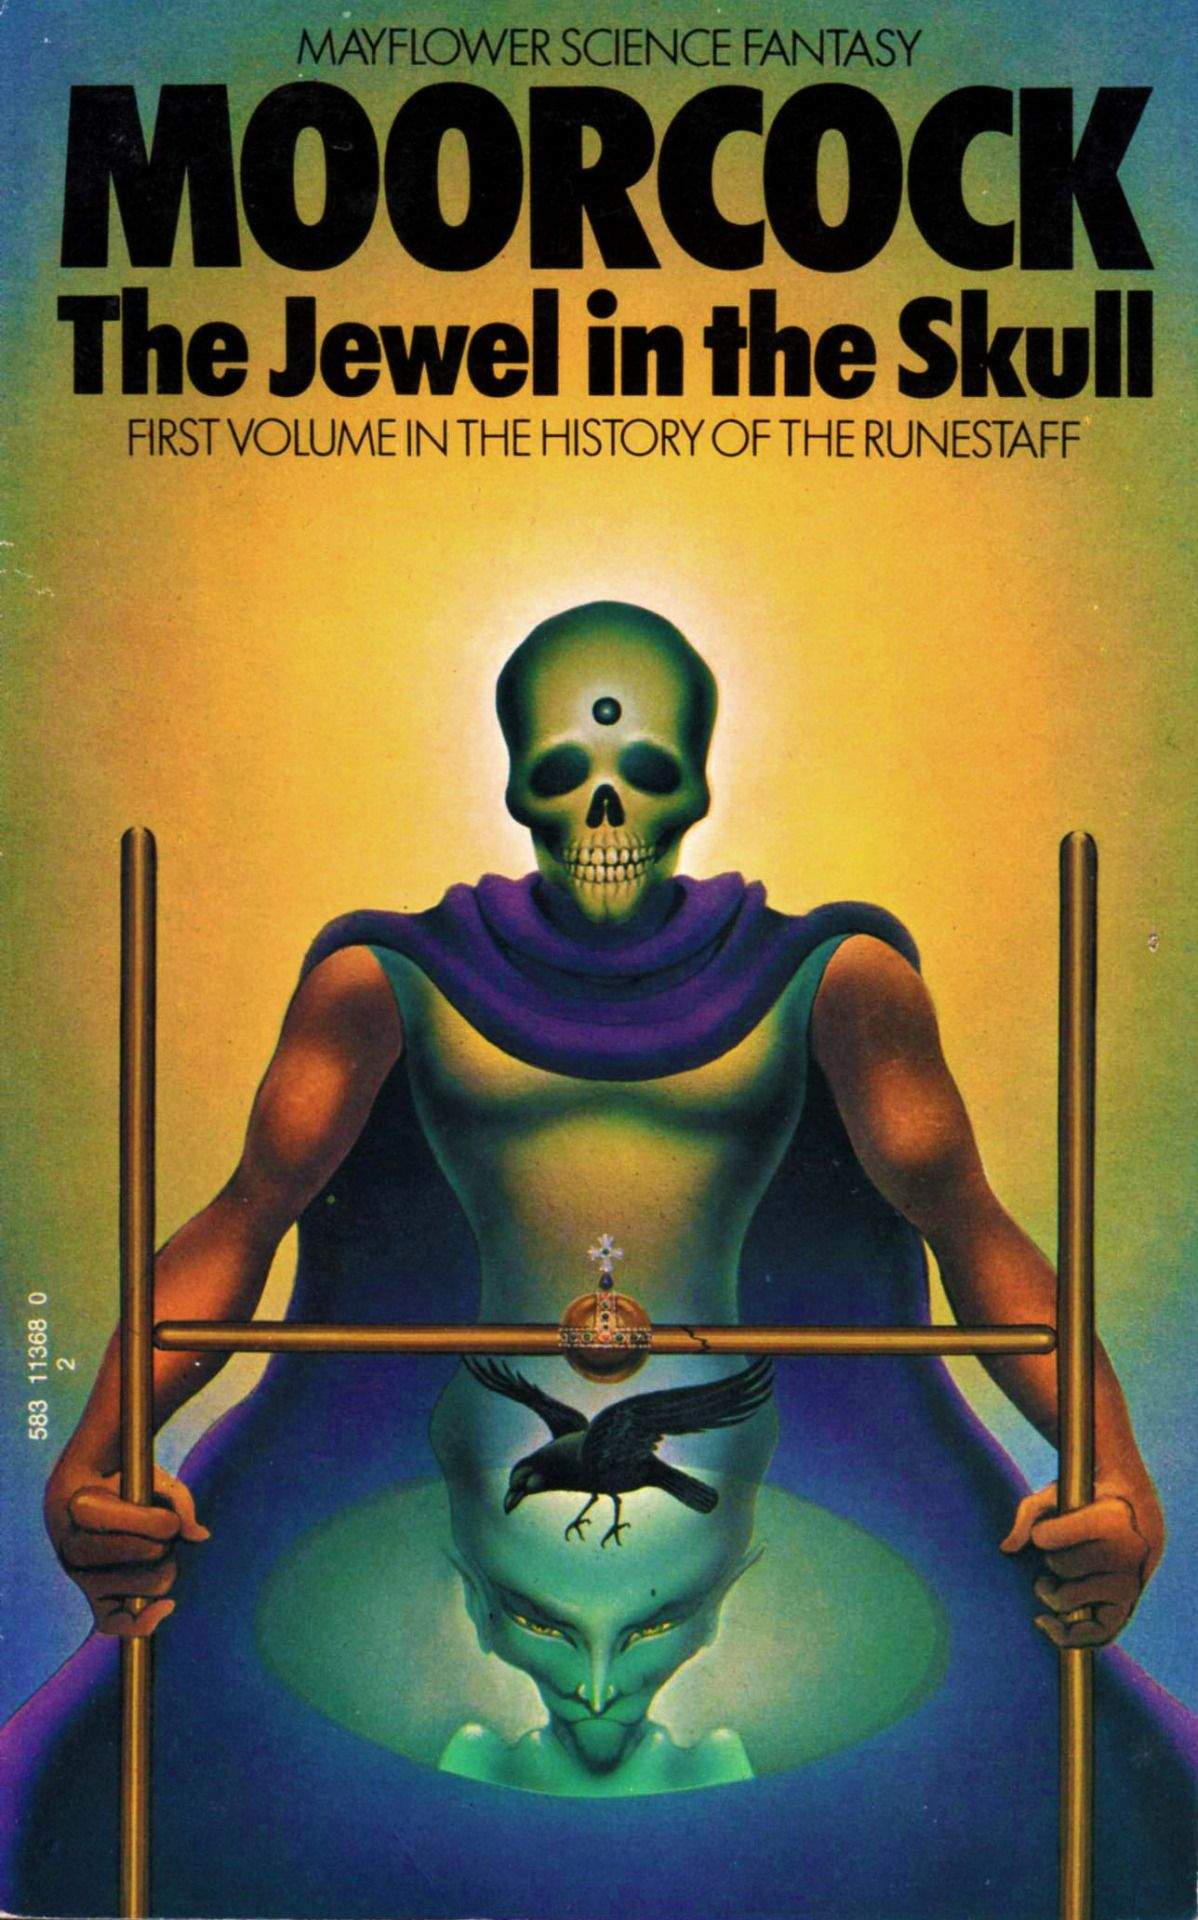 Michael Moorcock's Vintage Scifi Book Covers